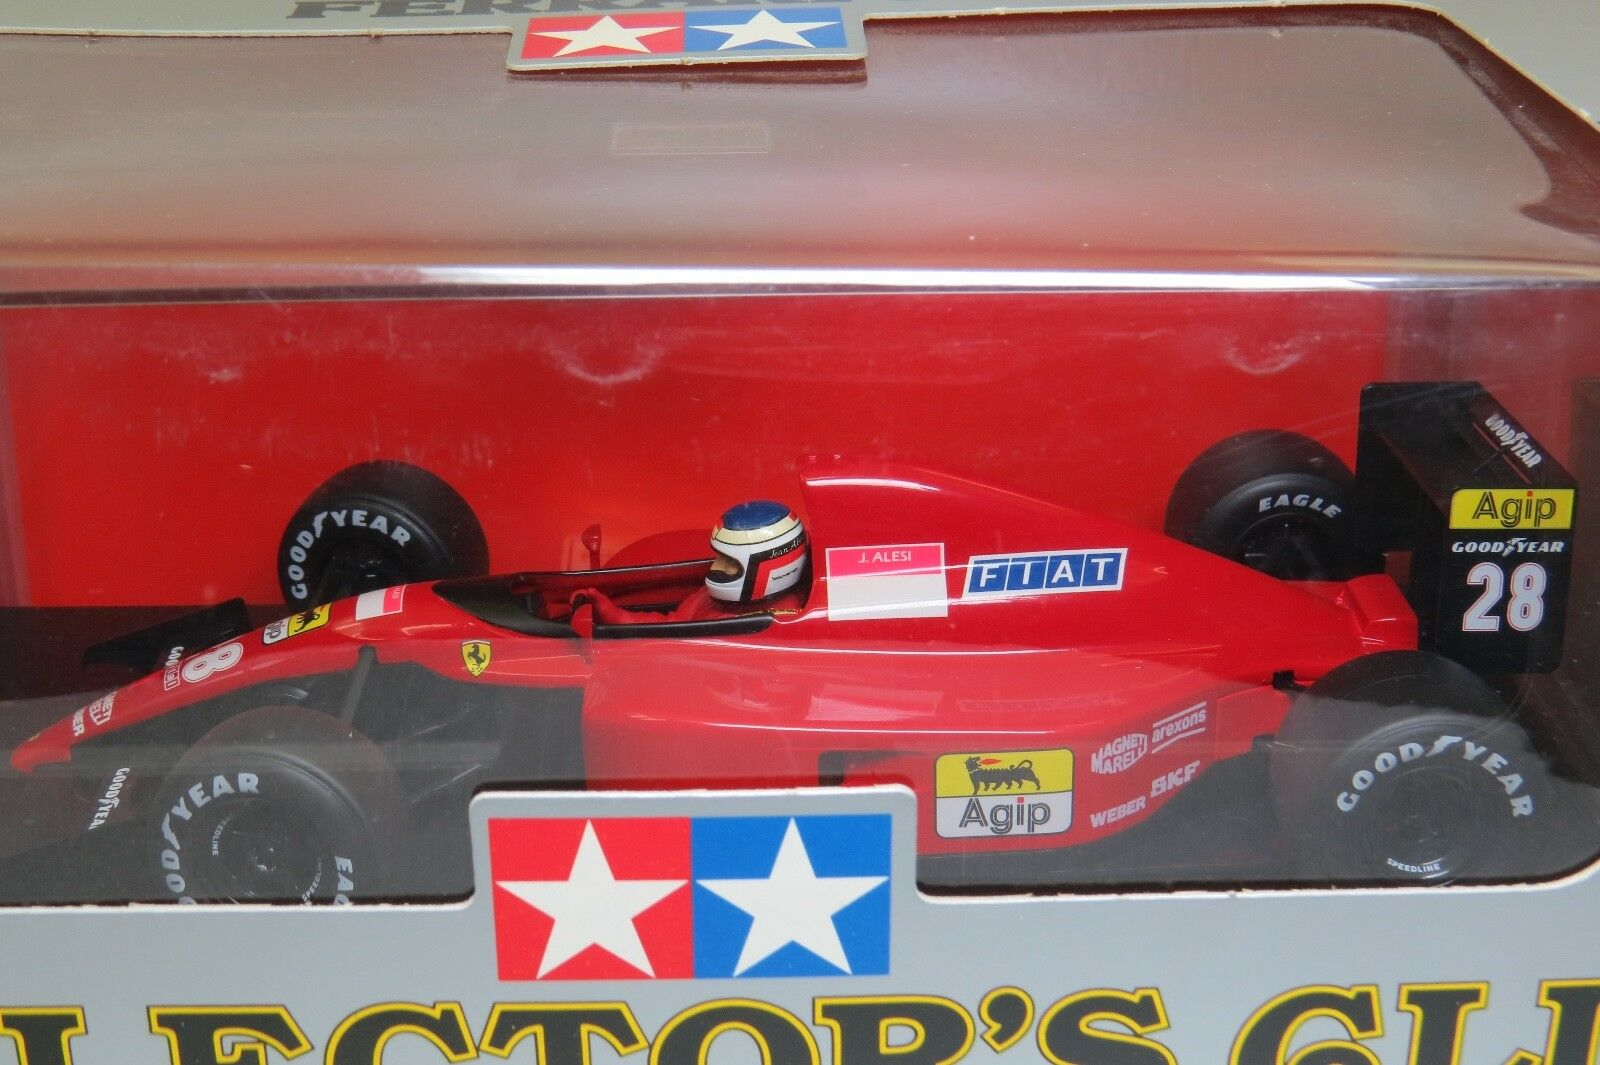 Ferrari 643 F1 1991 J. J. J. Alesi 1 20 Tamiya Collectors Club NEW in Box    Rare   b3c8a0